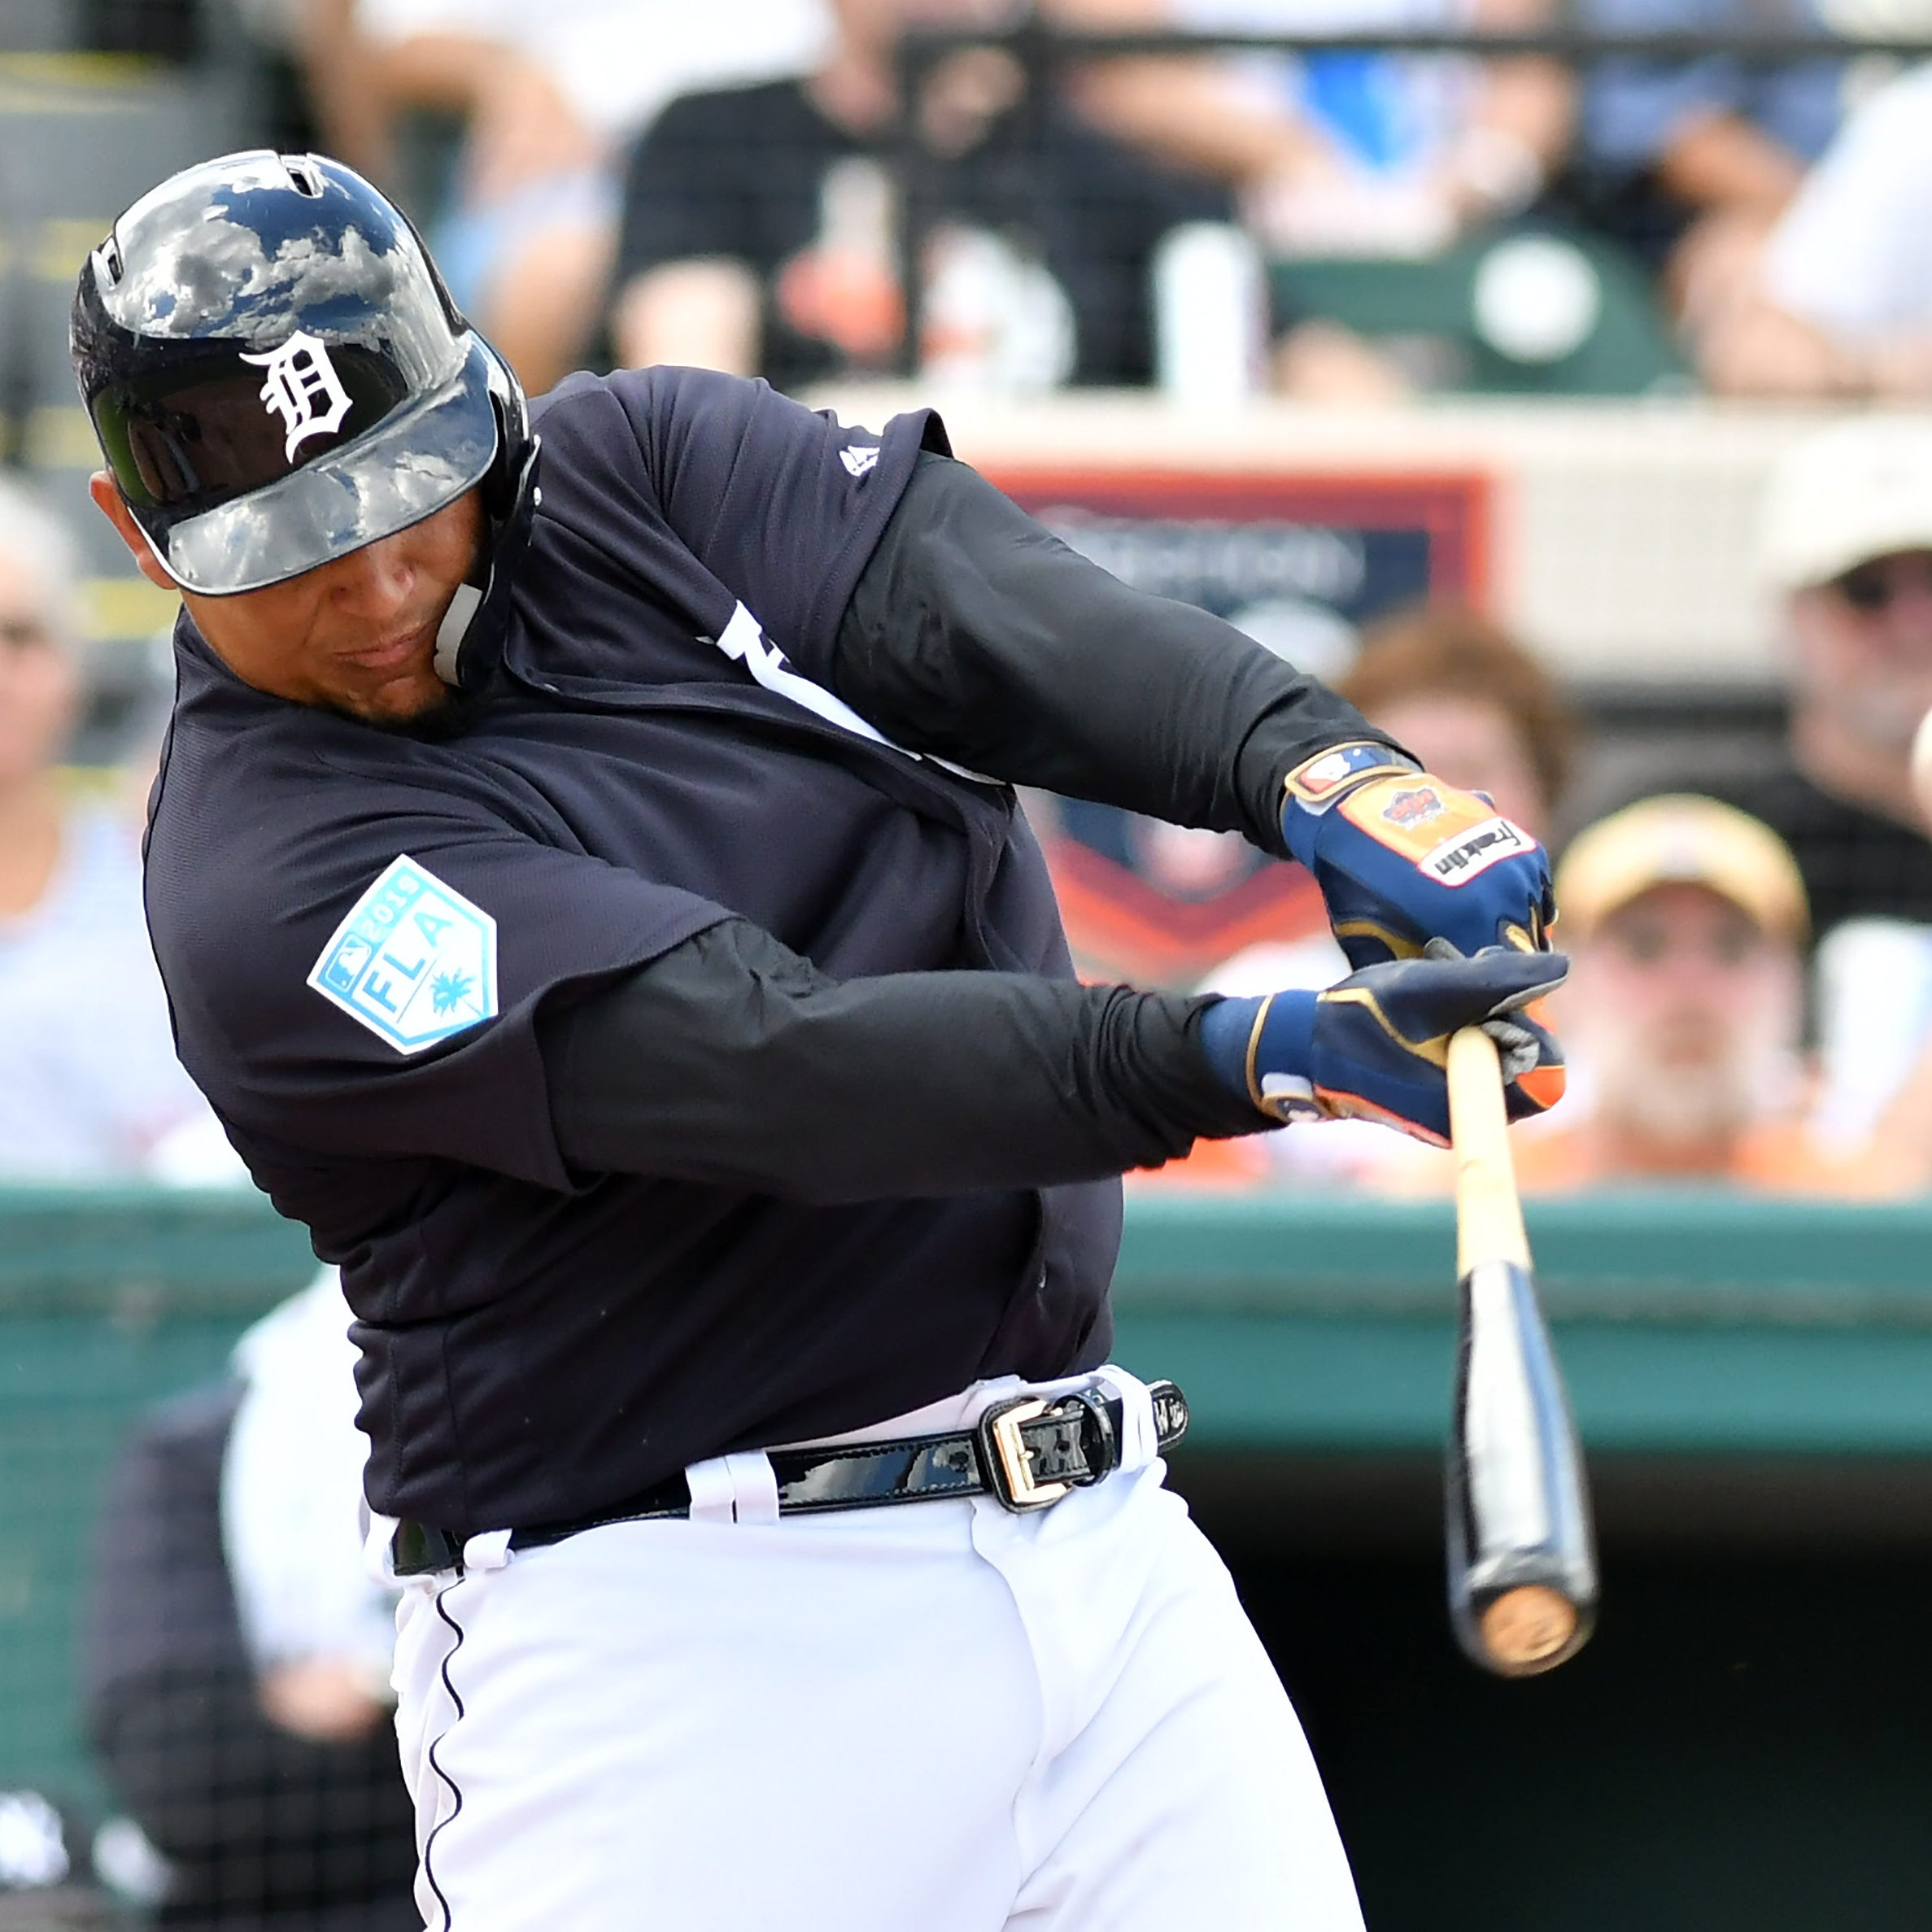 Hot start: Tigers' Miguel Cabrera clouts first home run of the spring